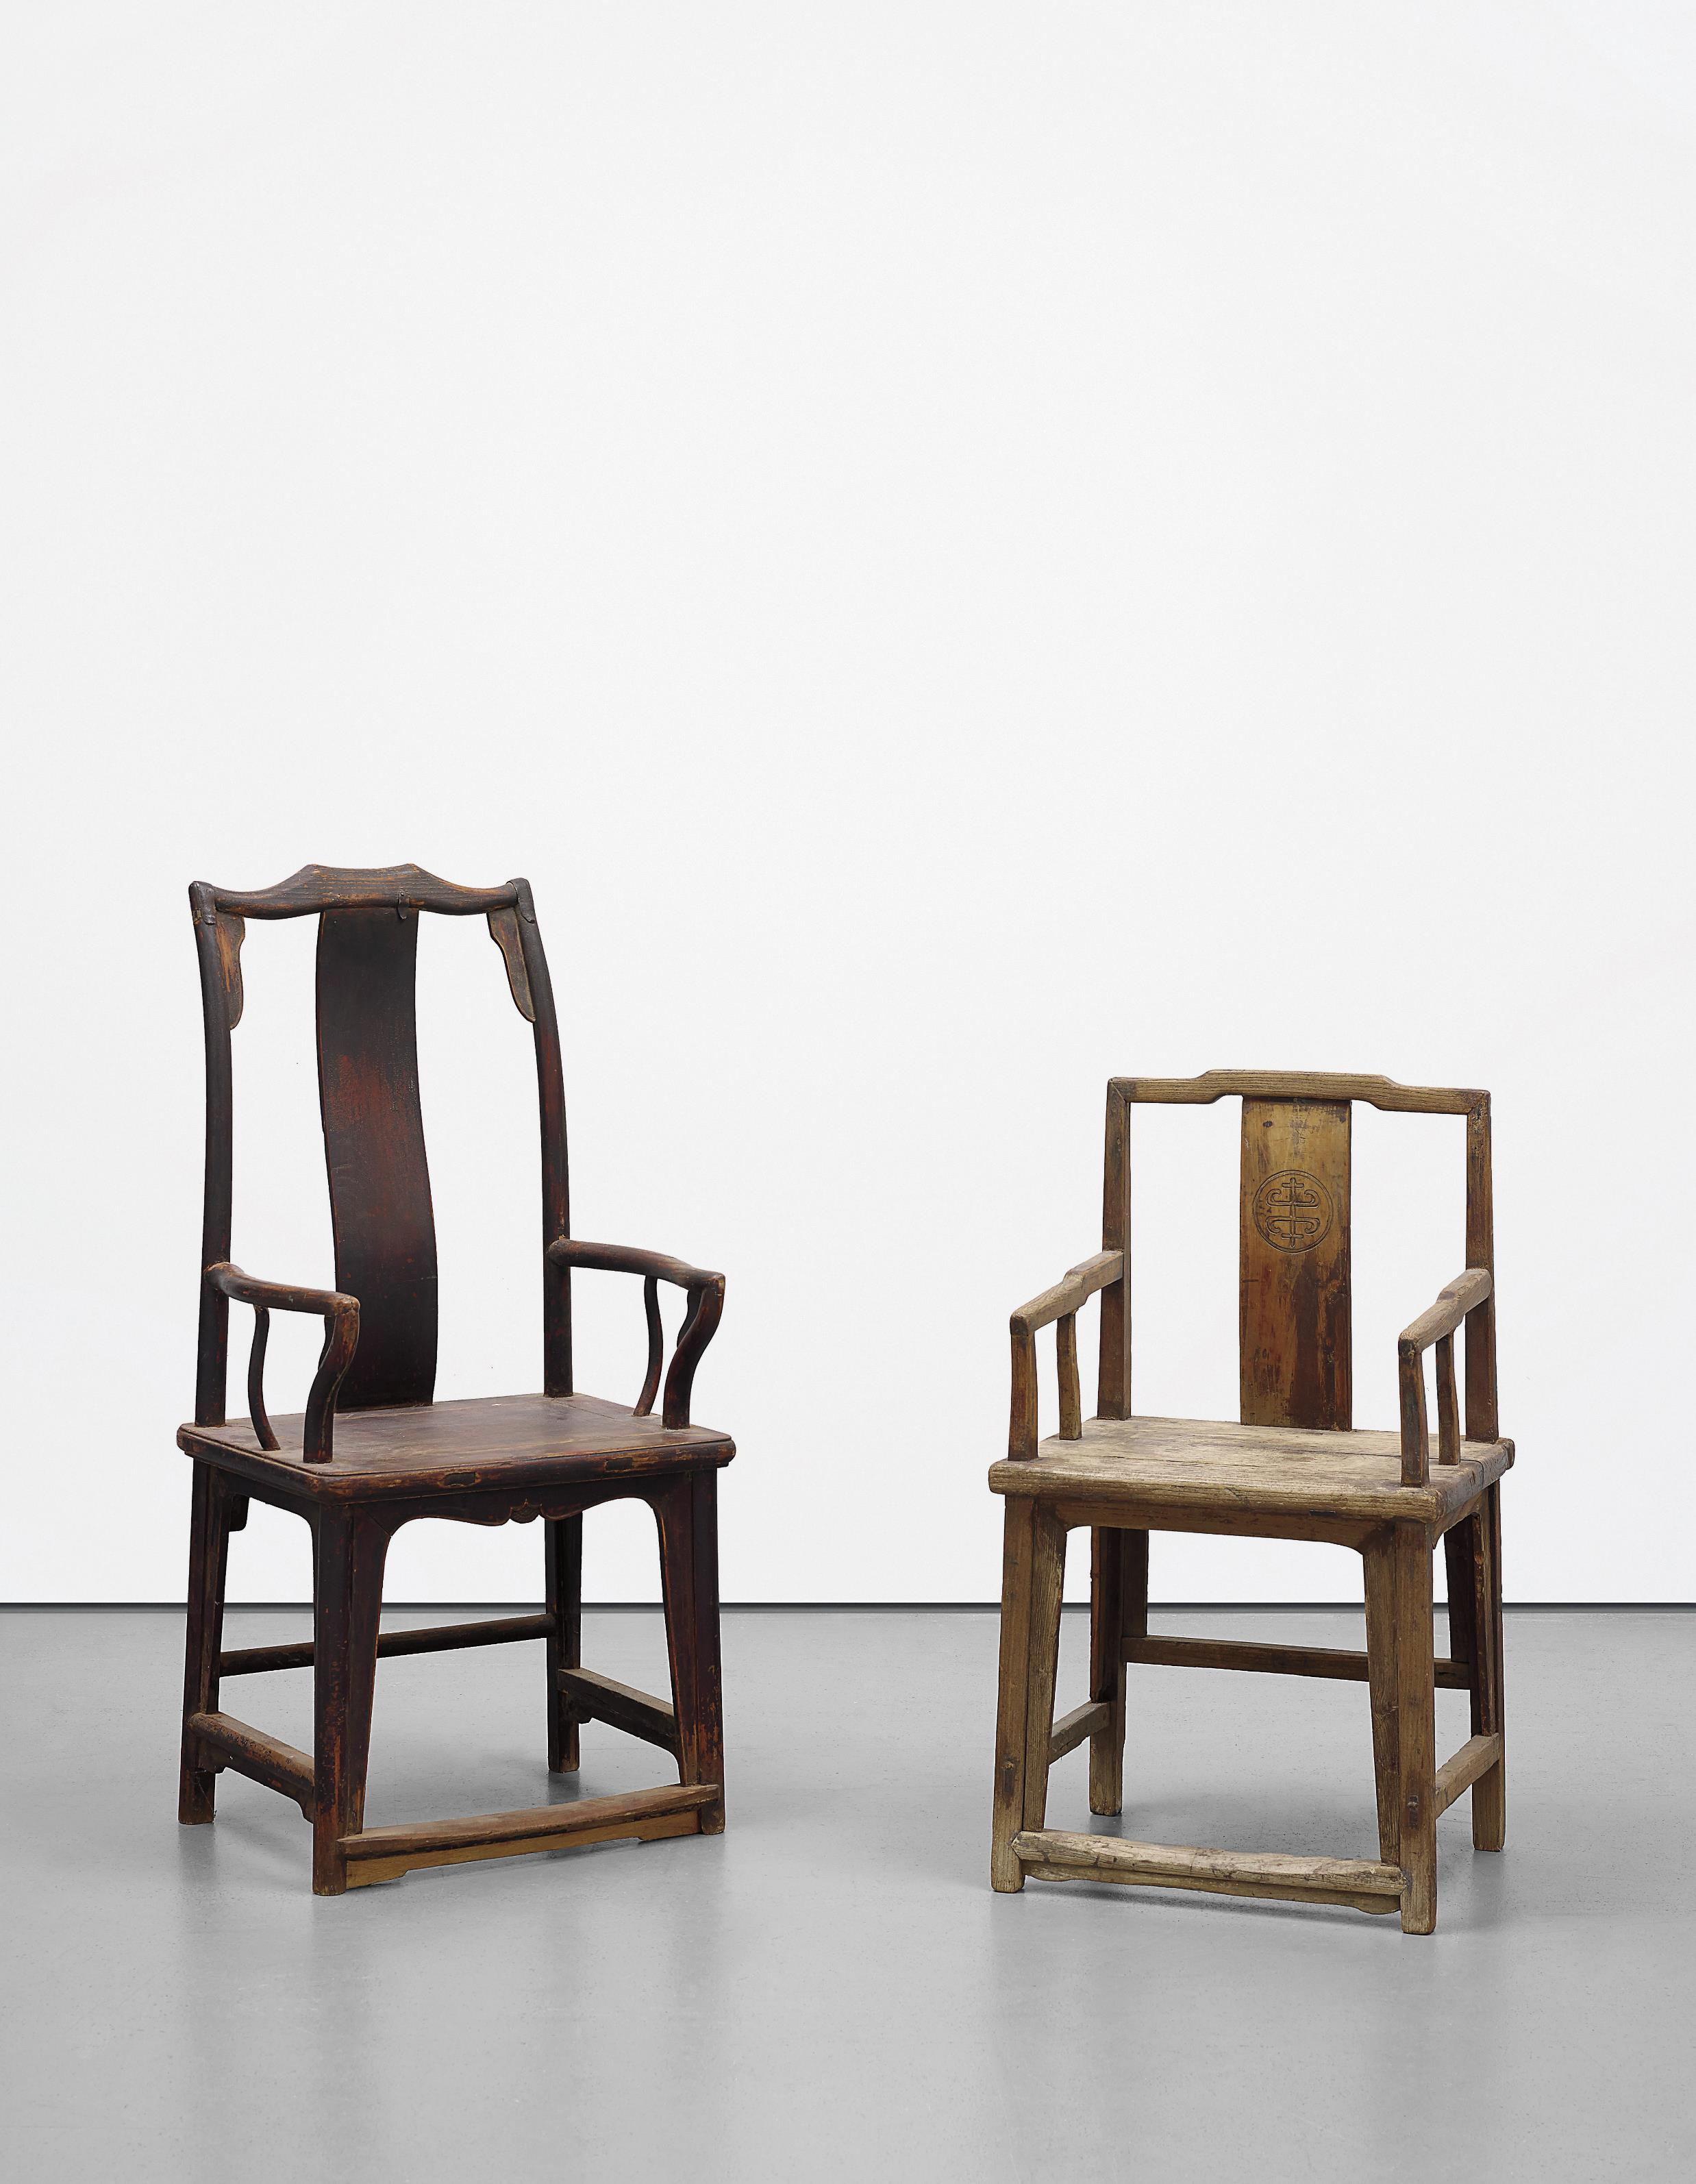 Ai Weiwei Fairytale - 1001 Chairs, 2007